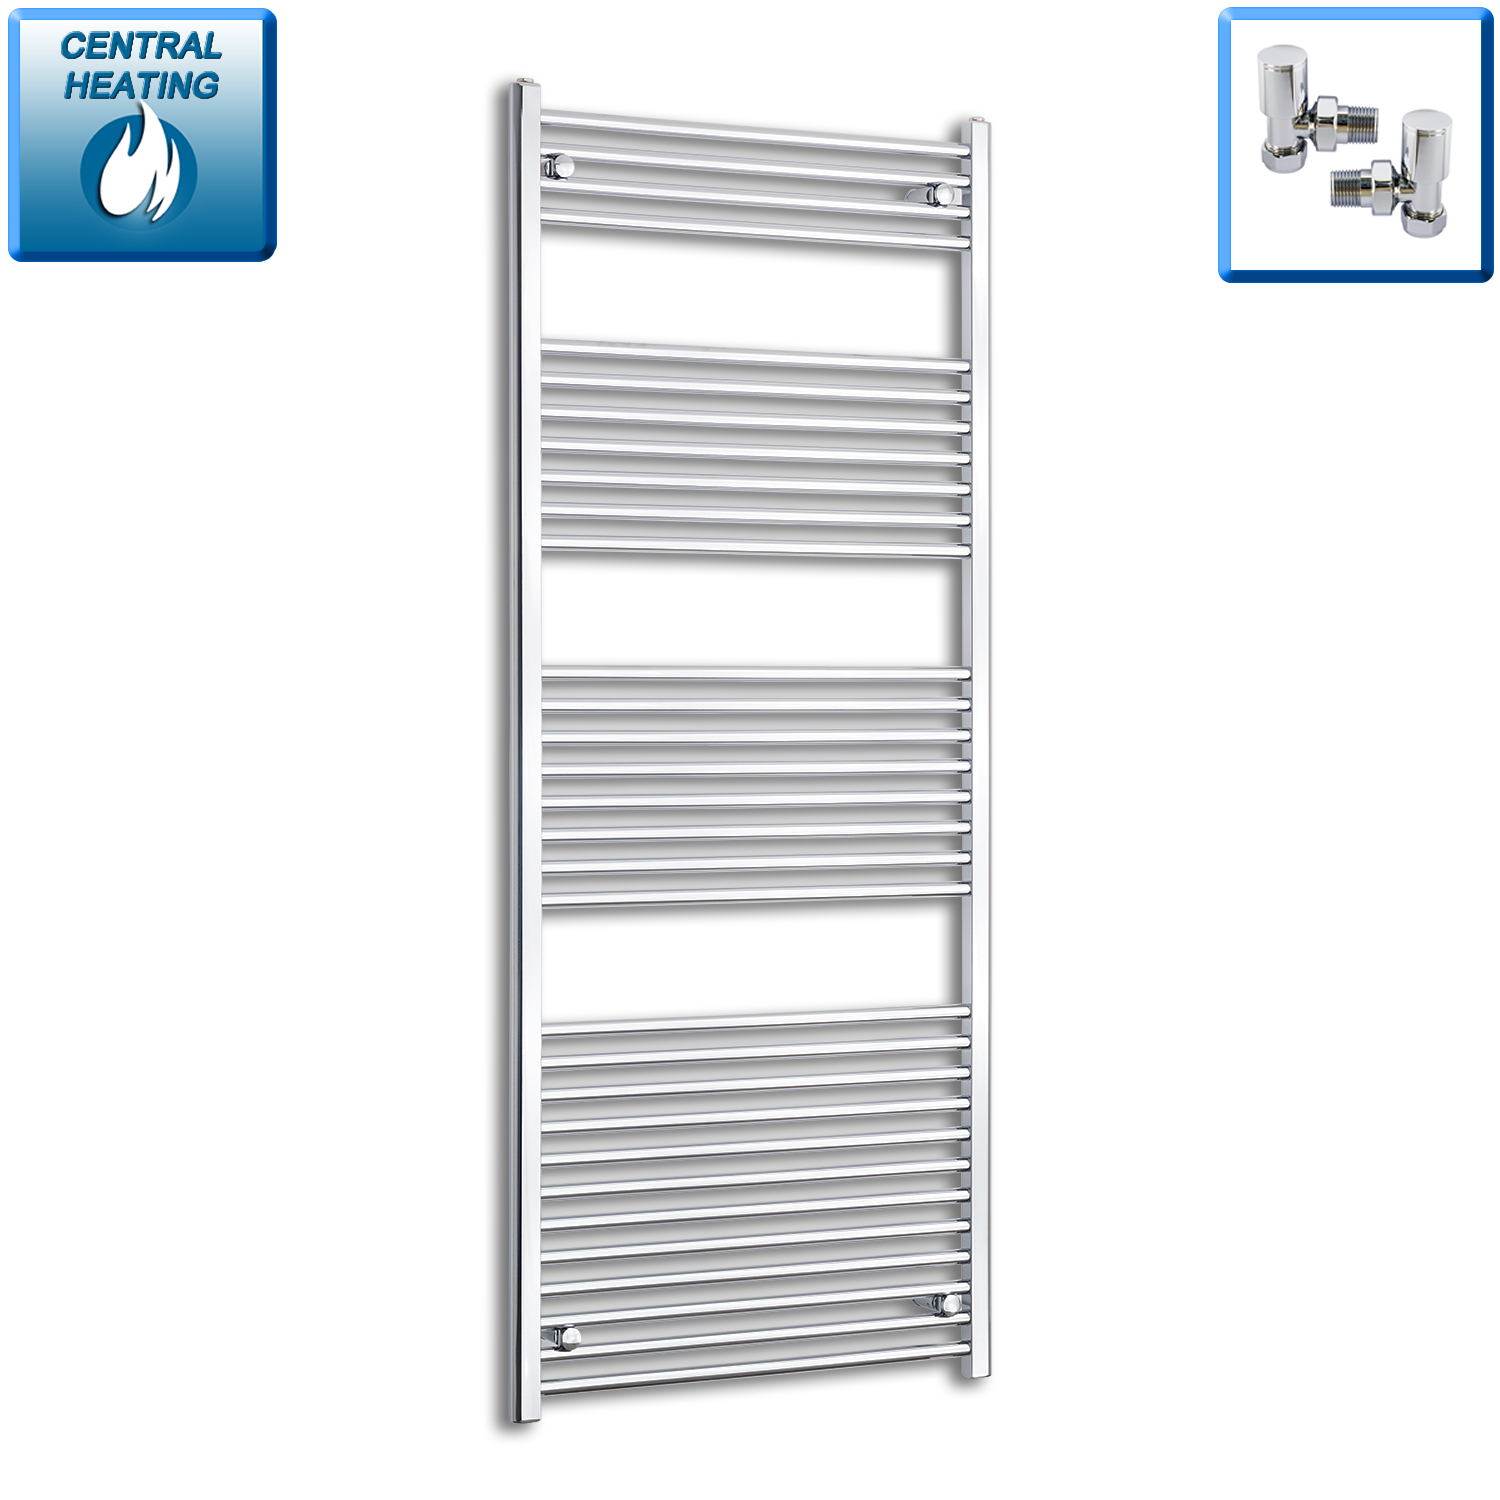 750mm Wide 1800mm High Curved Chrome Heated Towel Rail Radiator HTR,With Angled Valve